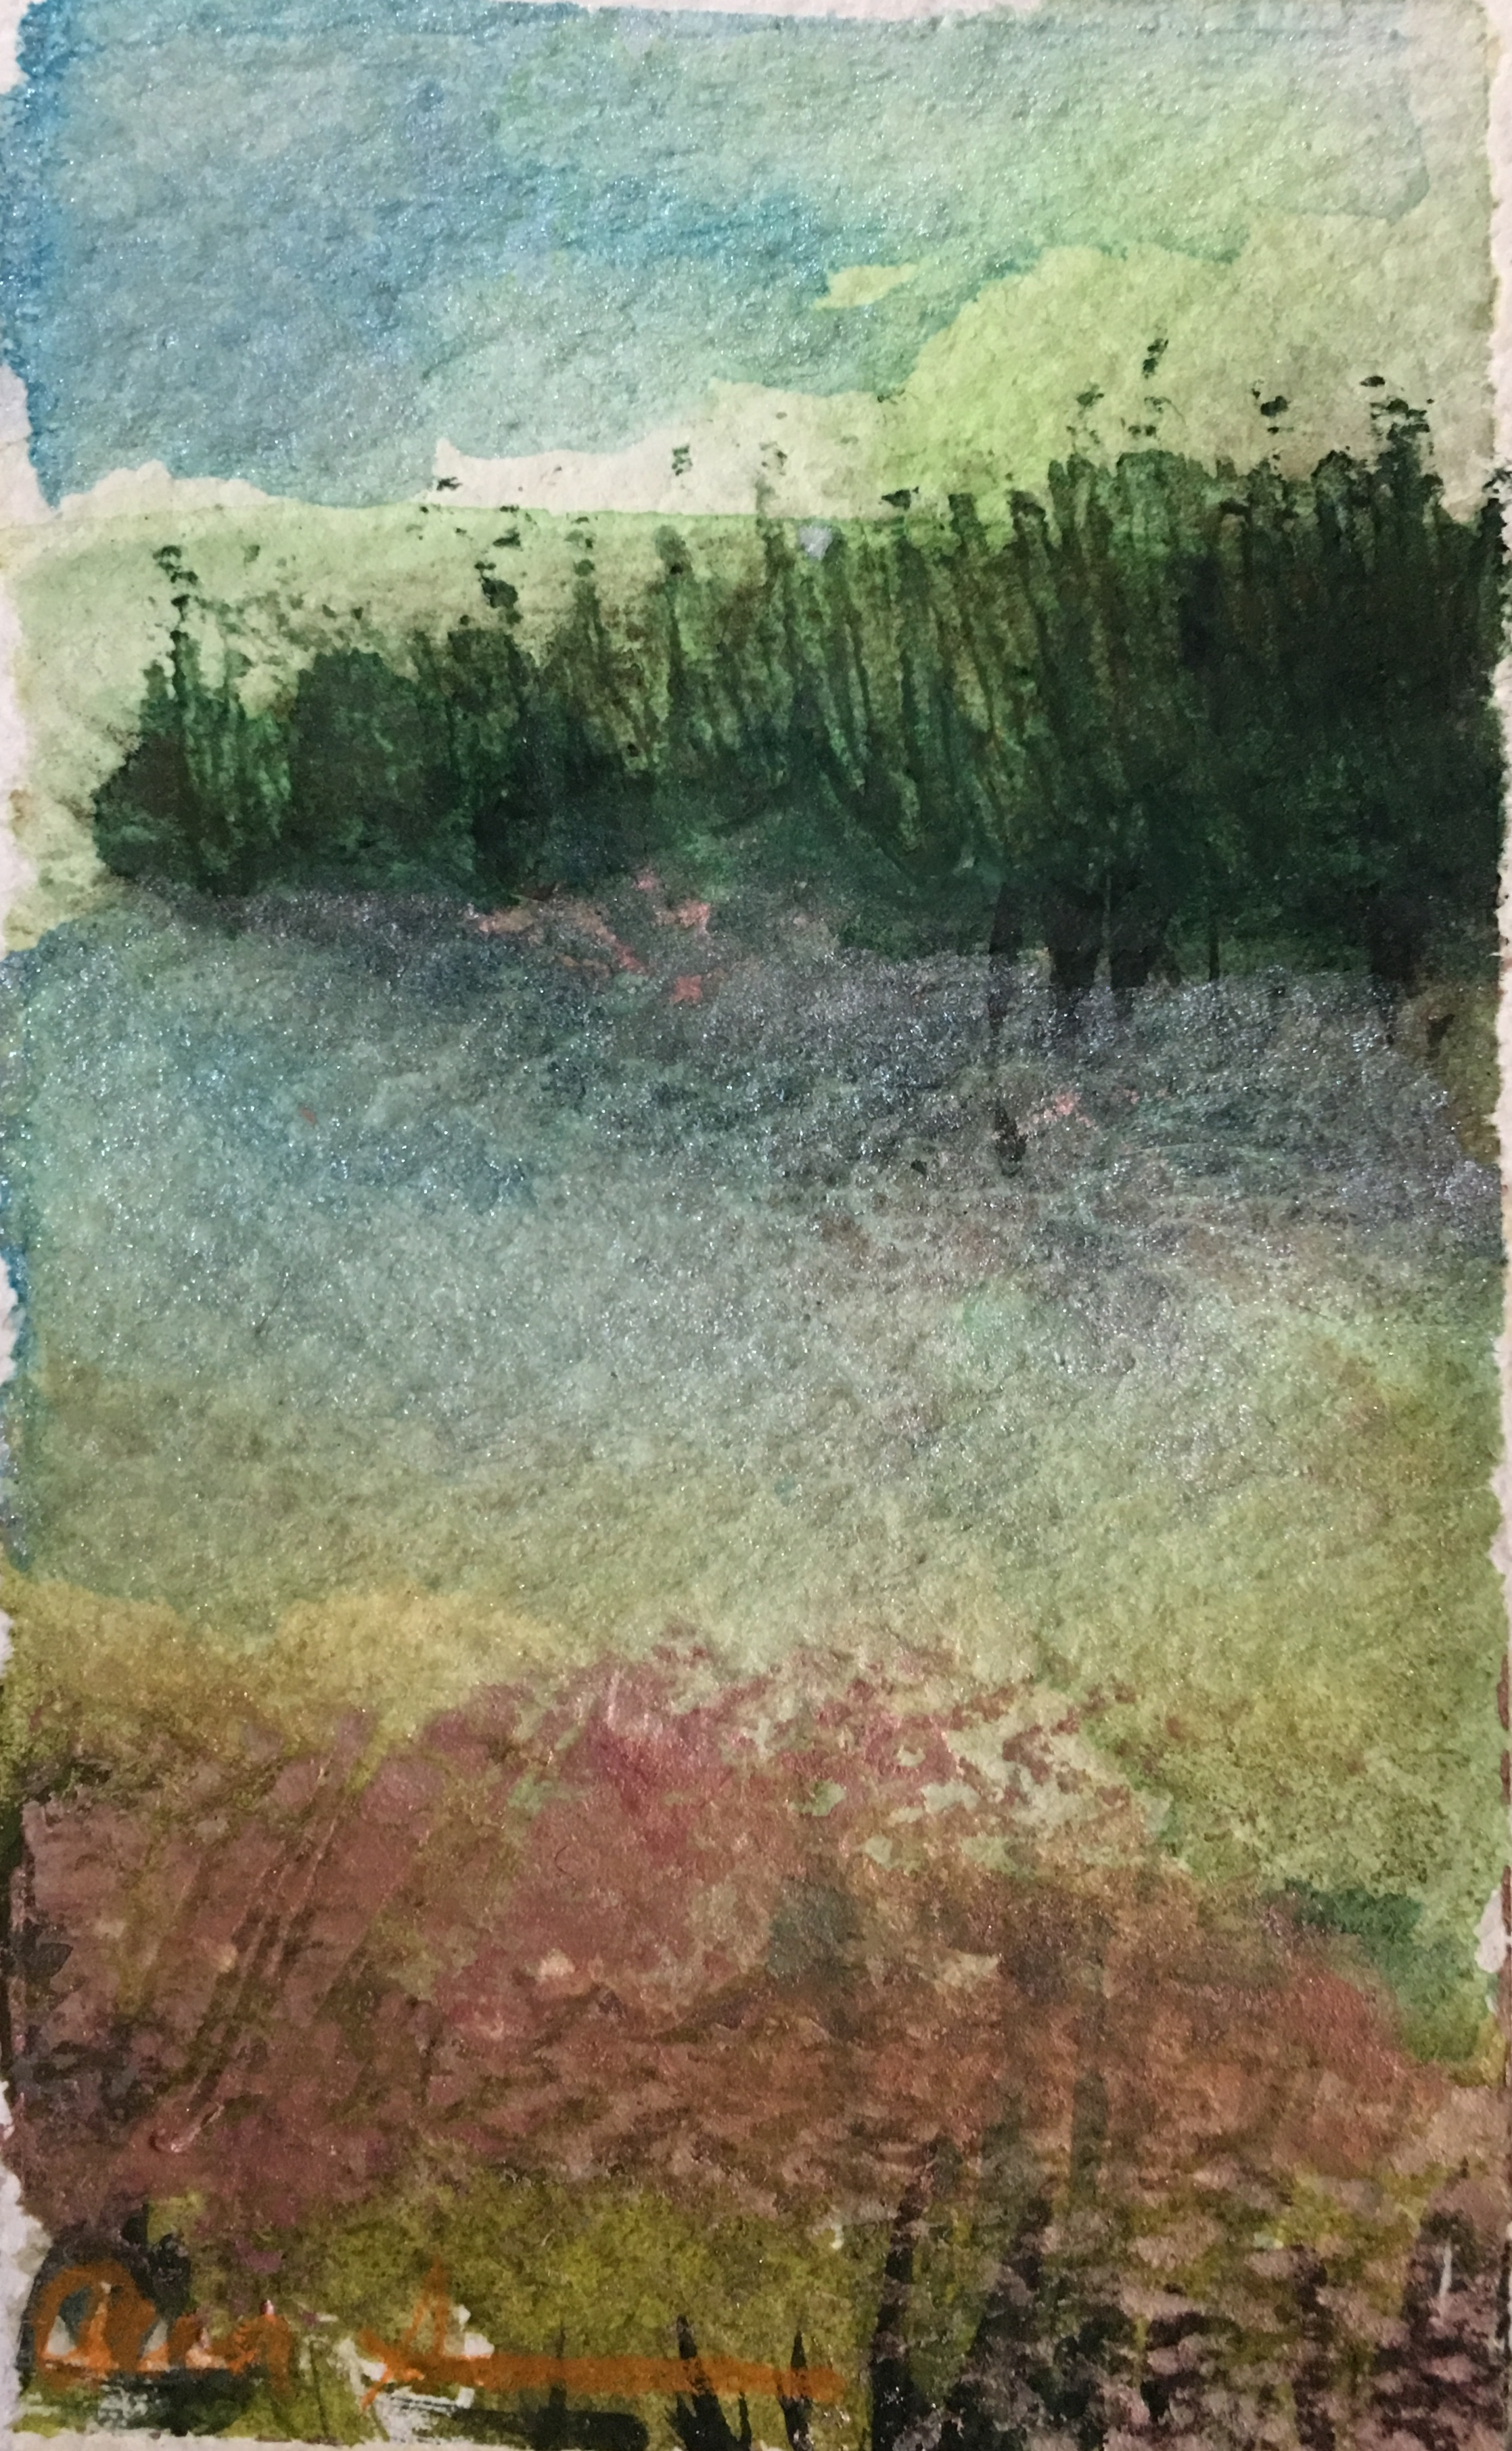 Humidity Blurs the Meadow by Ann Stretton